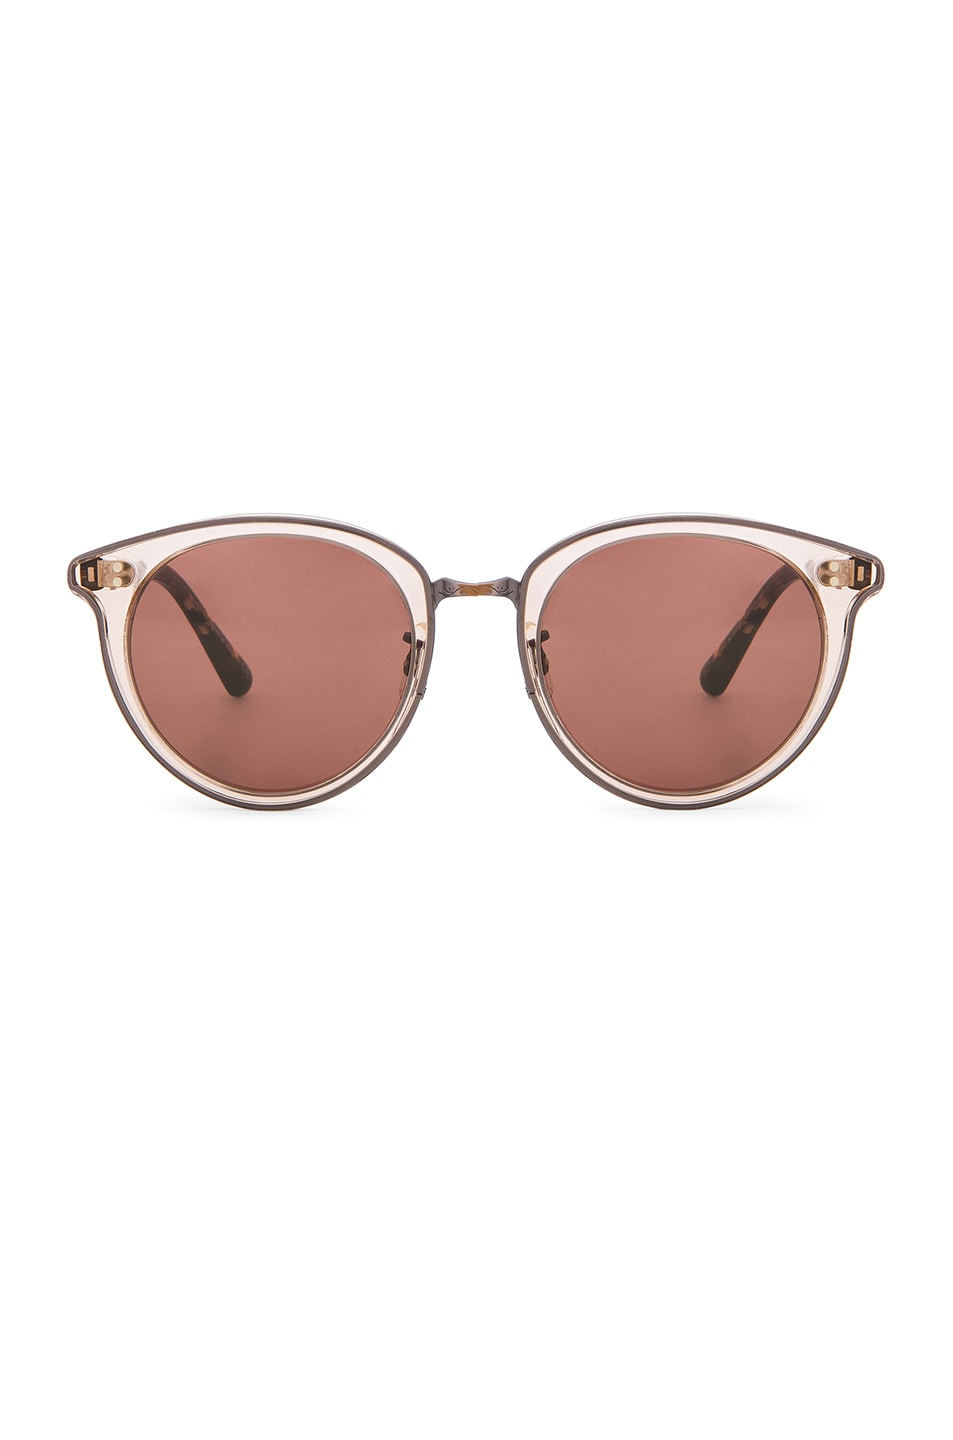 Image 1 of Oliver Peoples Spelman Sunglasses in Blush & Rose